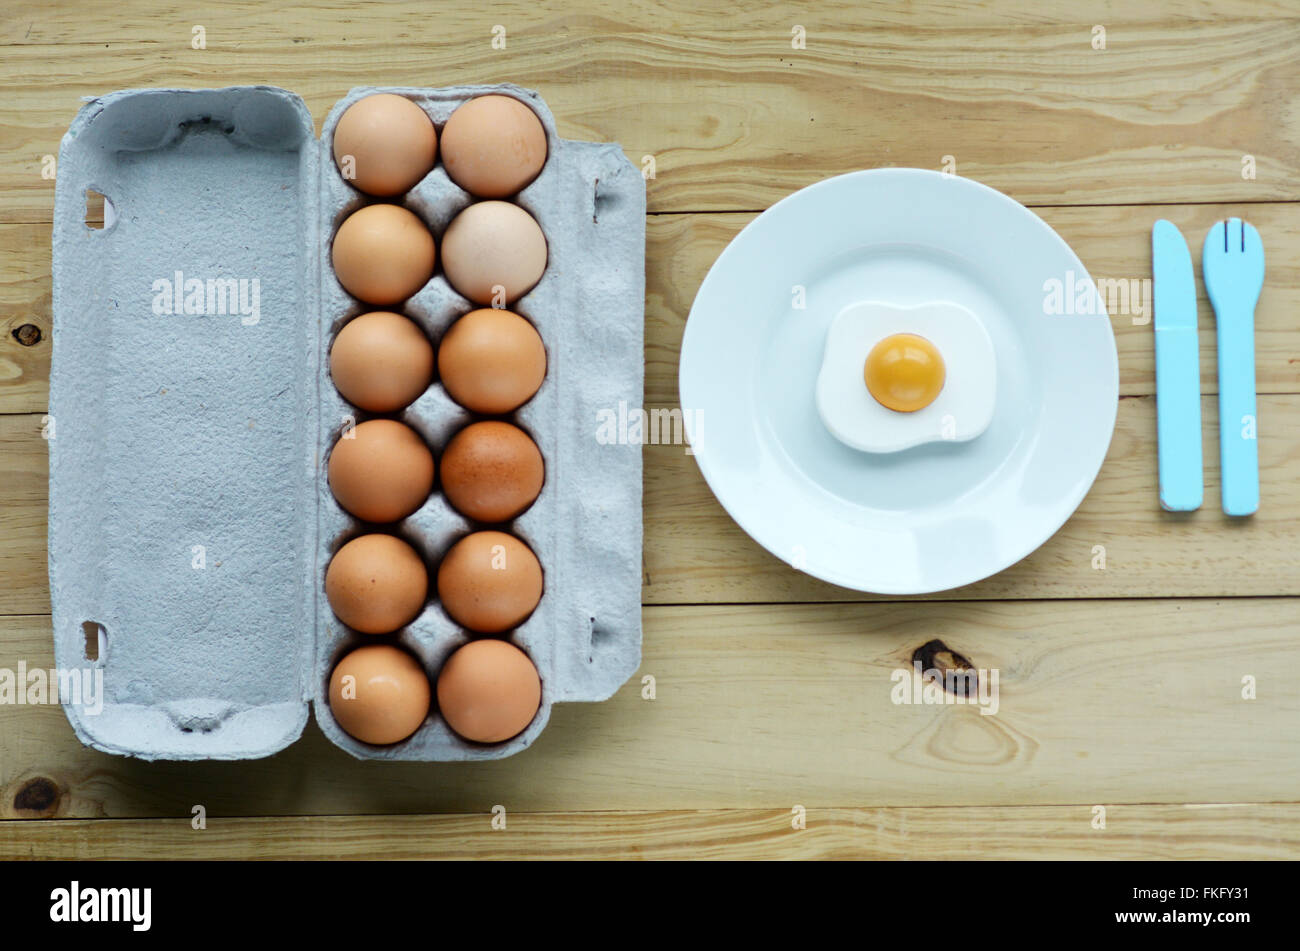 Flat lay of eggs tray beside a white plate with sunny side up egg and wooden knife and fork.Food background and - Stock Image